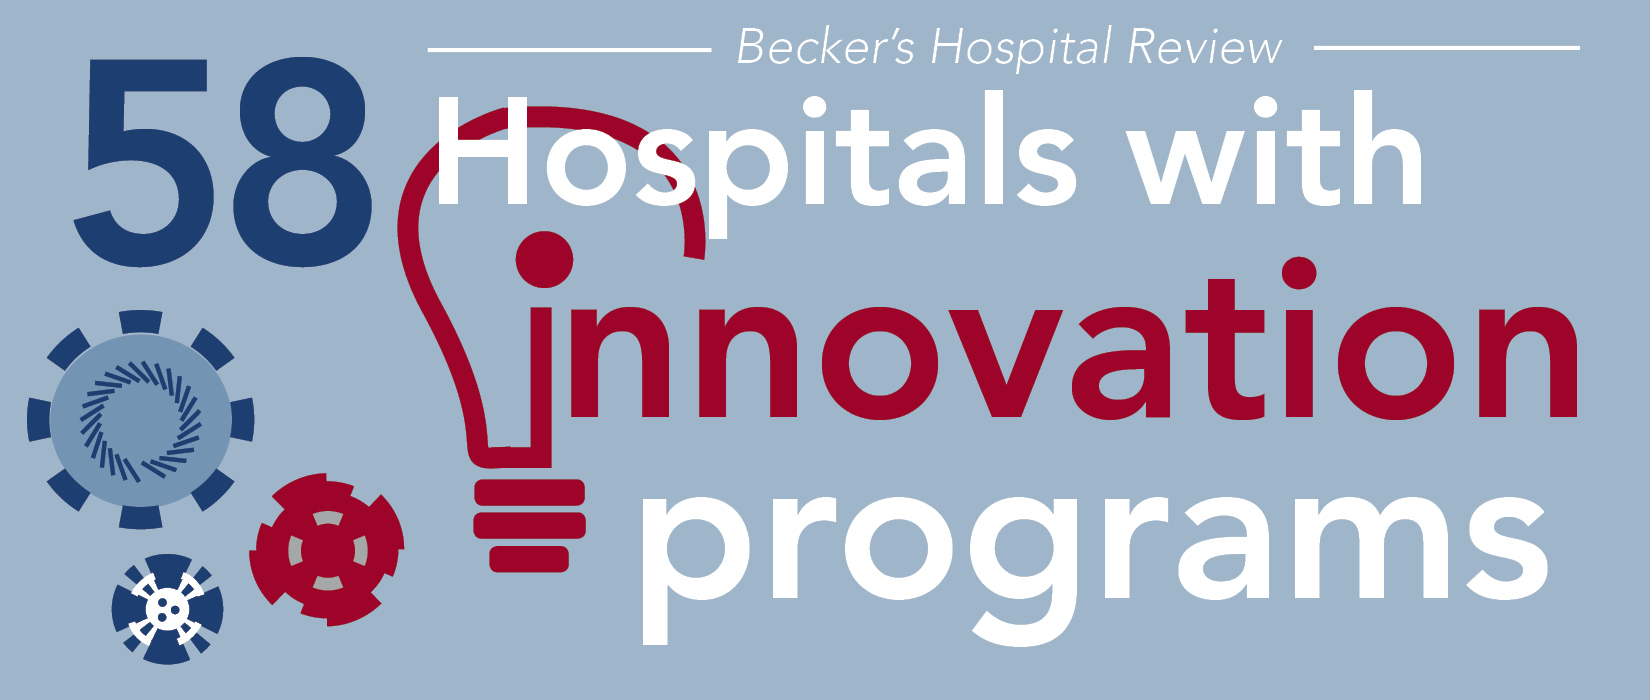 58 Hospitals and Health Systems with Innovation Programs 2017